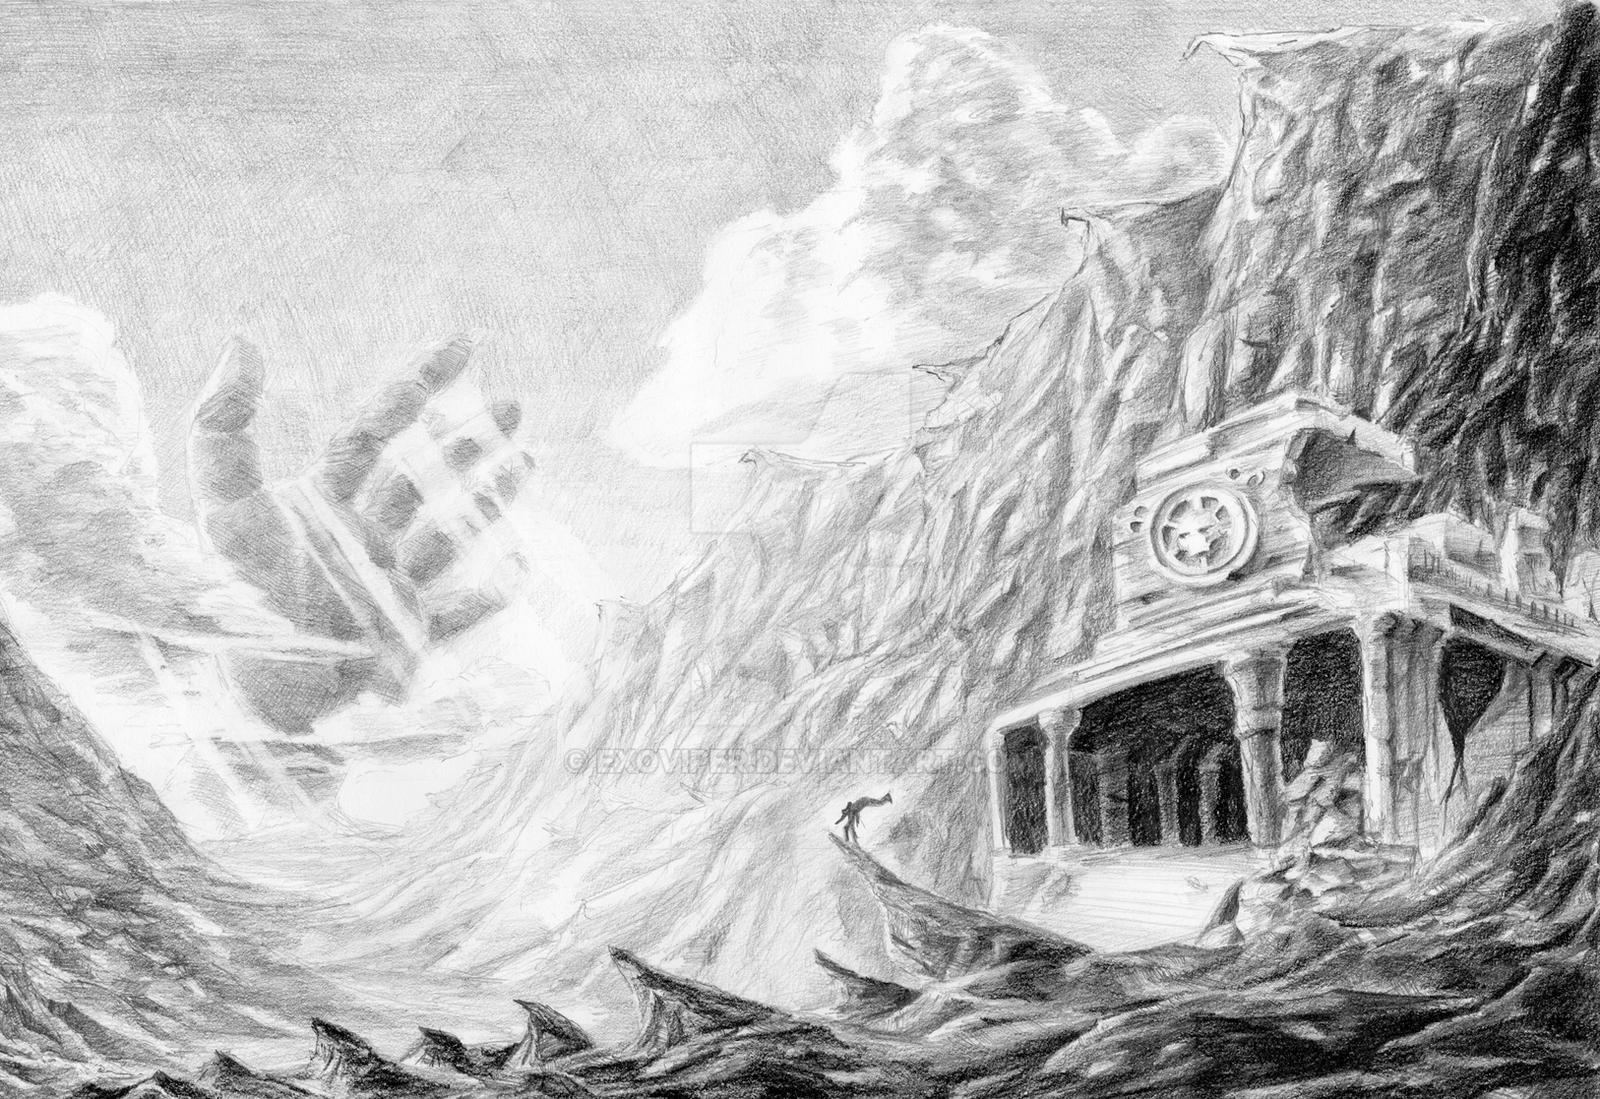 Fantasy Landscape-Pencil by Exoviper on DeviantArt